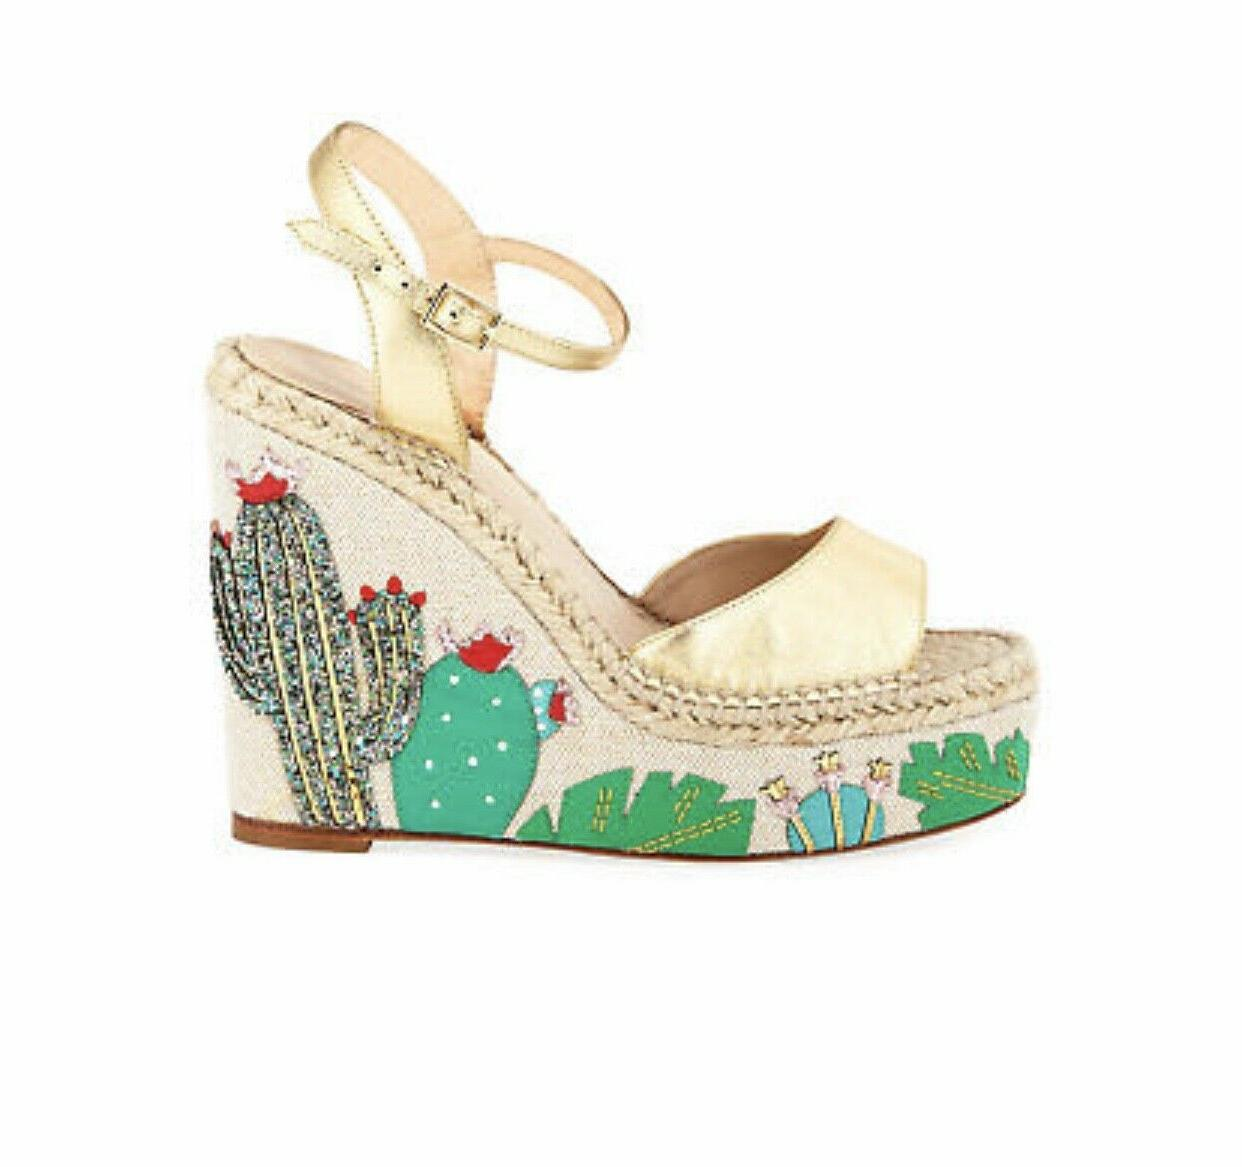 size 11 dallas cactus wedge sandals ankle